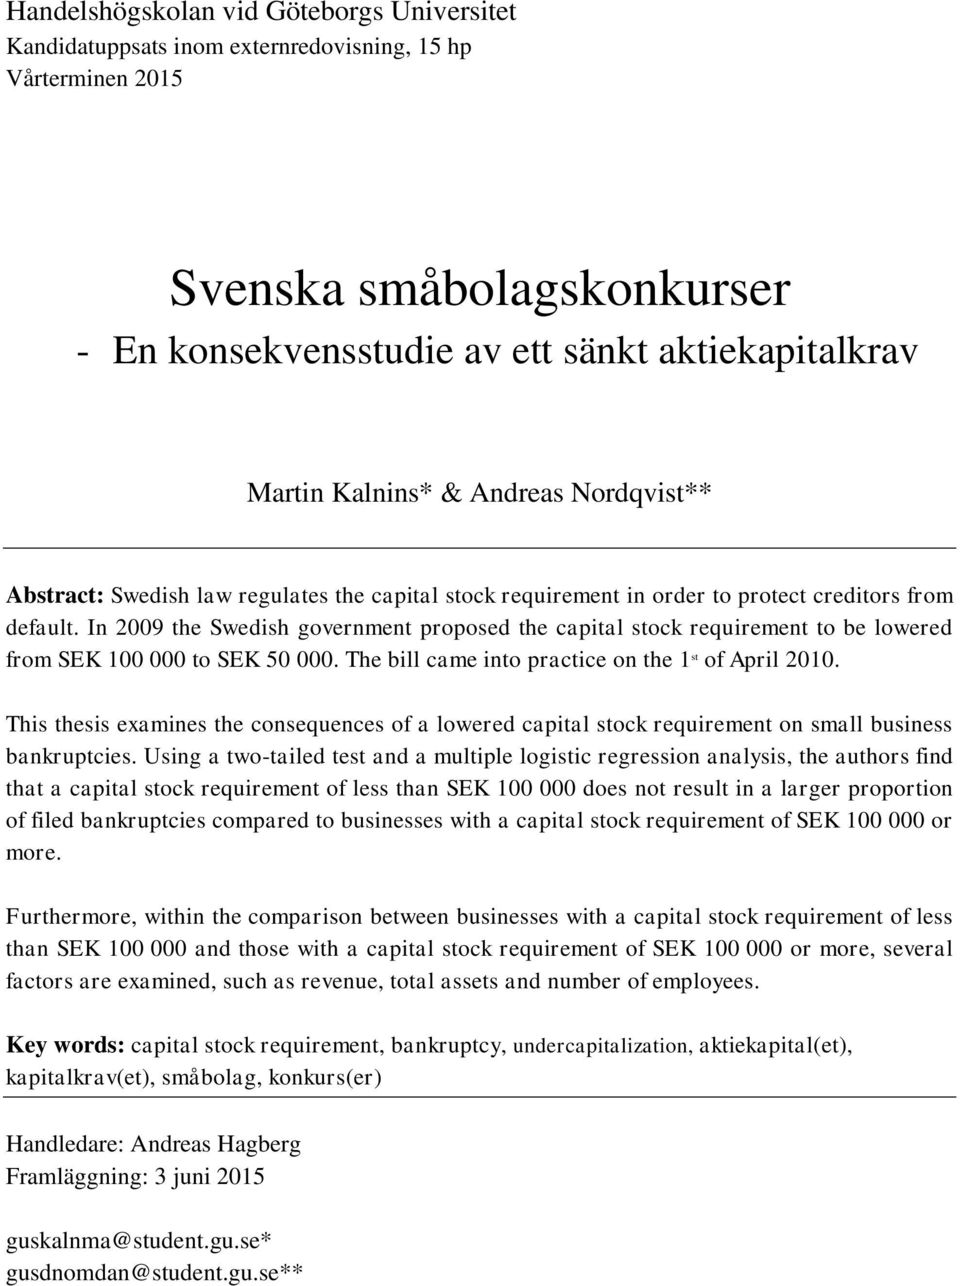 In 2009 the Swedish government proposed the capital stock requirement to be lowered from SEK 100 000 to SEK 50 000. The bill came into practice on the 1 st of April 2010.